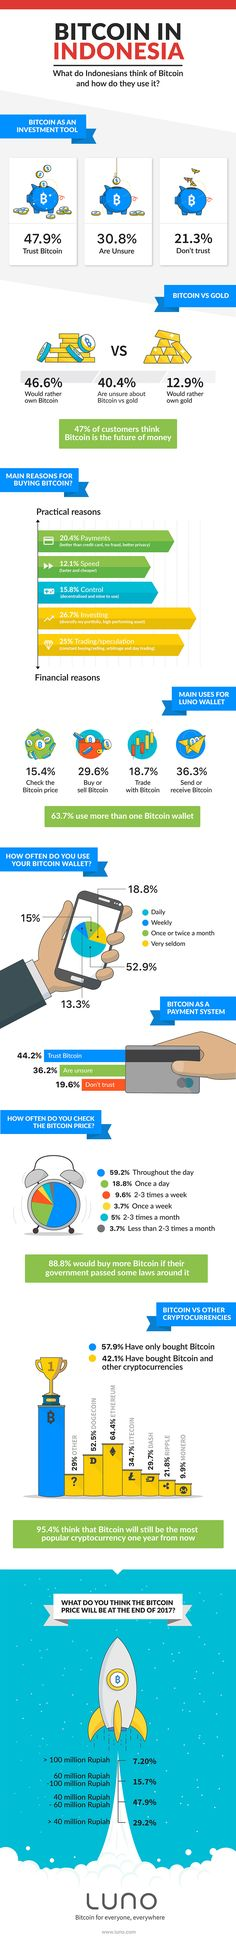 How-Indonesians-use-Bitcoin_infographic www.luno.com